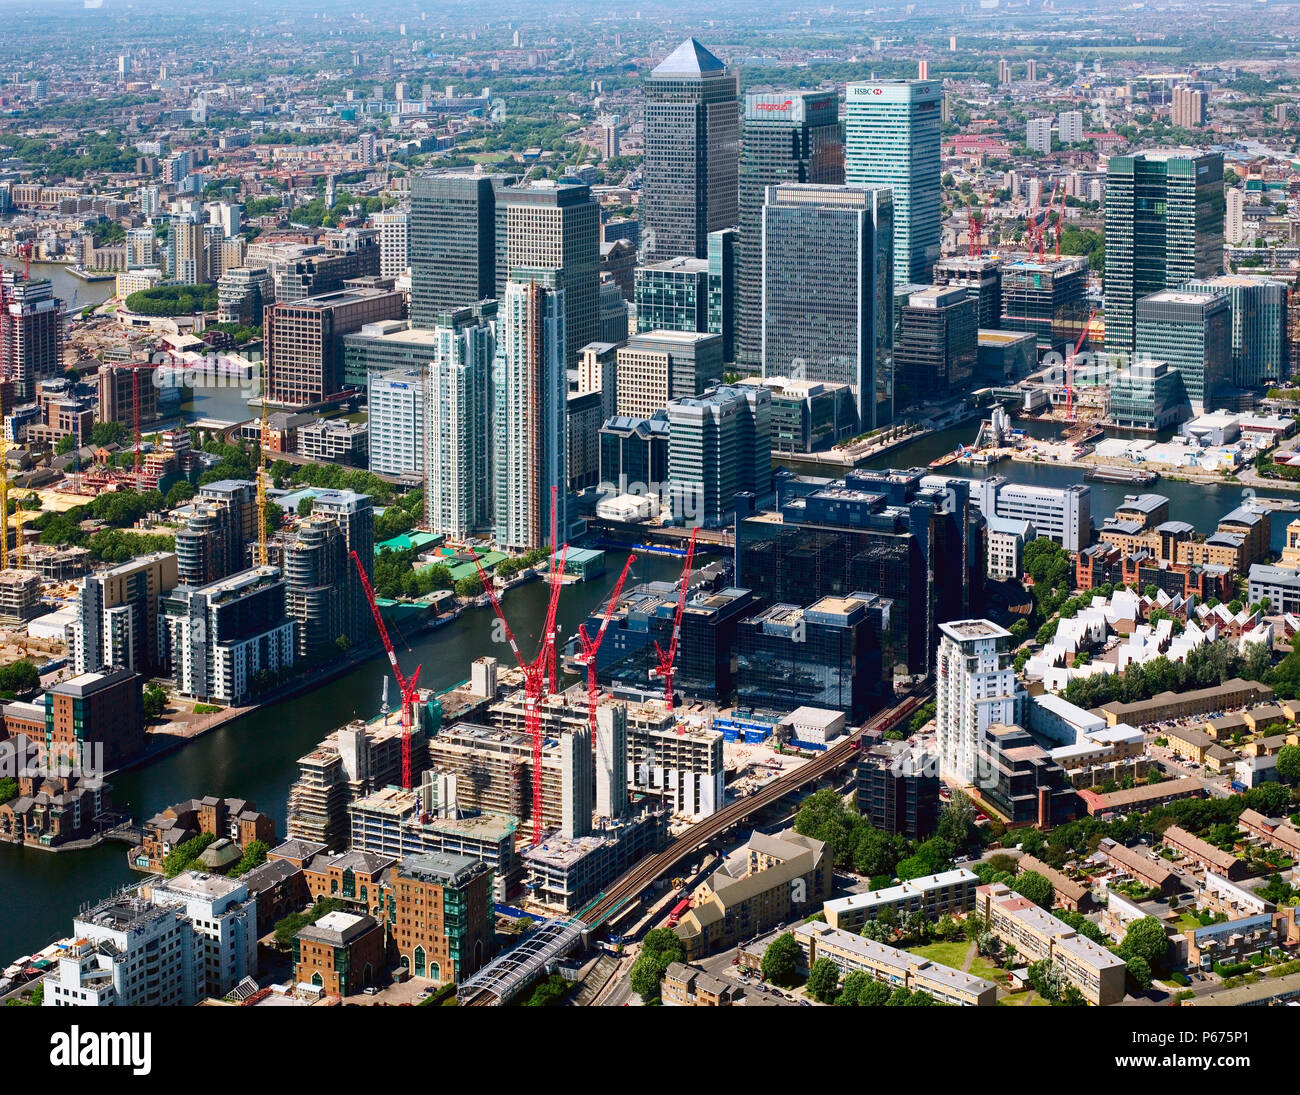 Aerial view of Canary Wharf, Docklands, looking from the south, Llondon, UK Stock Photo